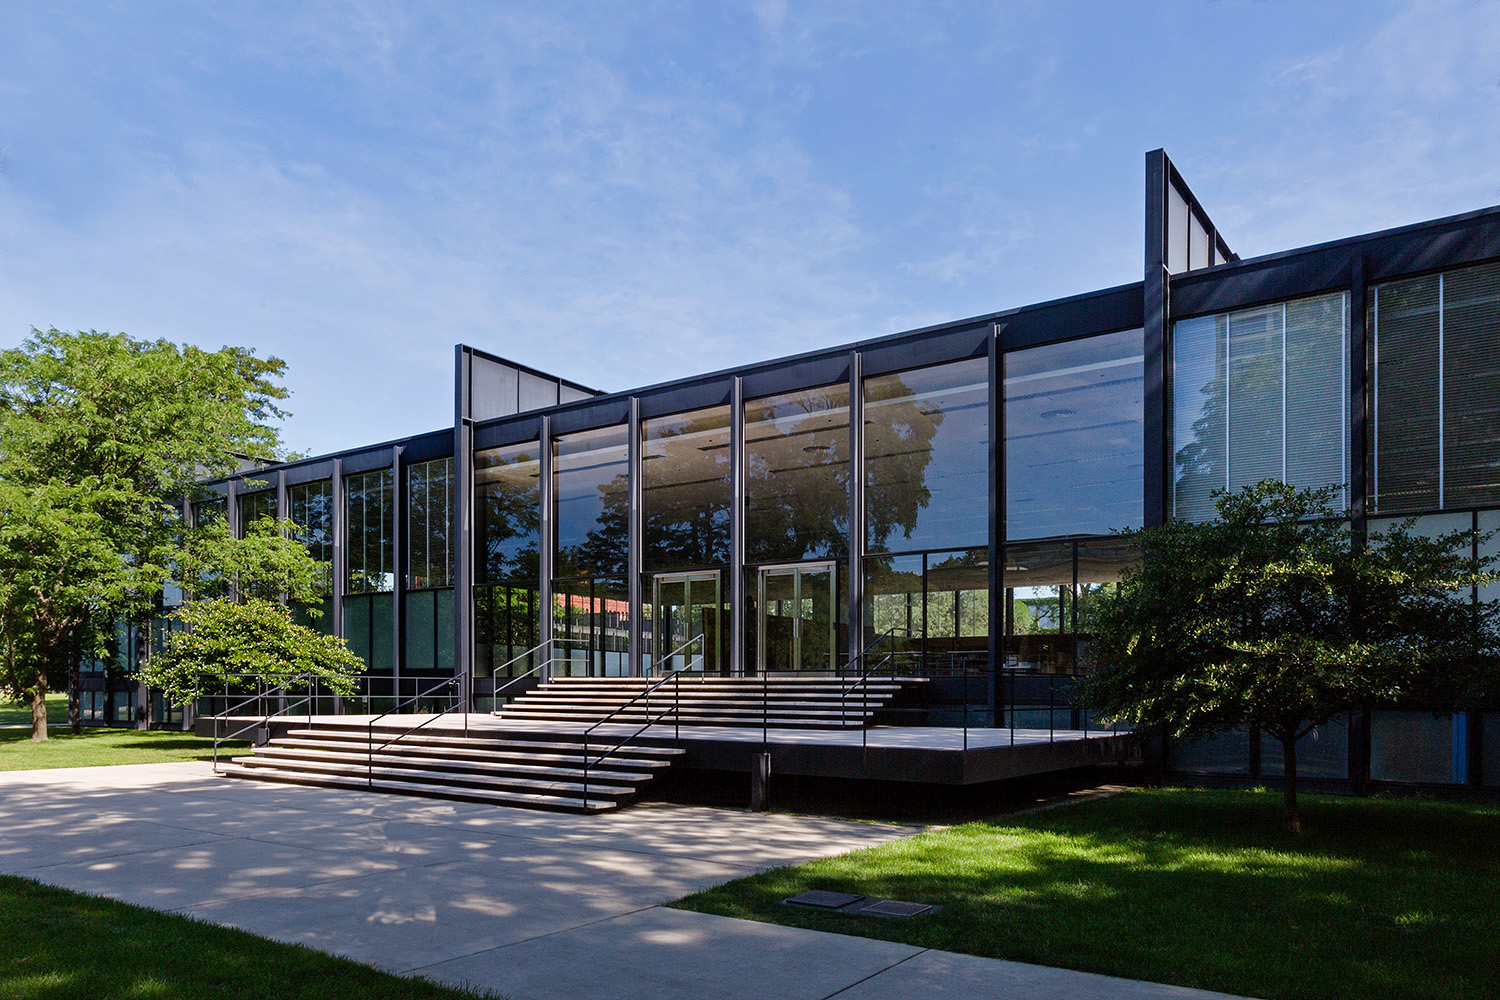 Crown Hall / Illinois Insitute of Technology / Mies van der Rohe